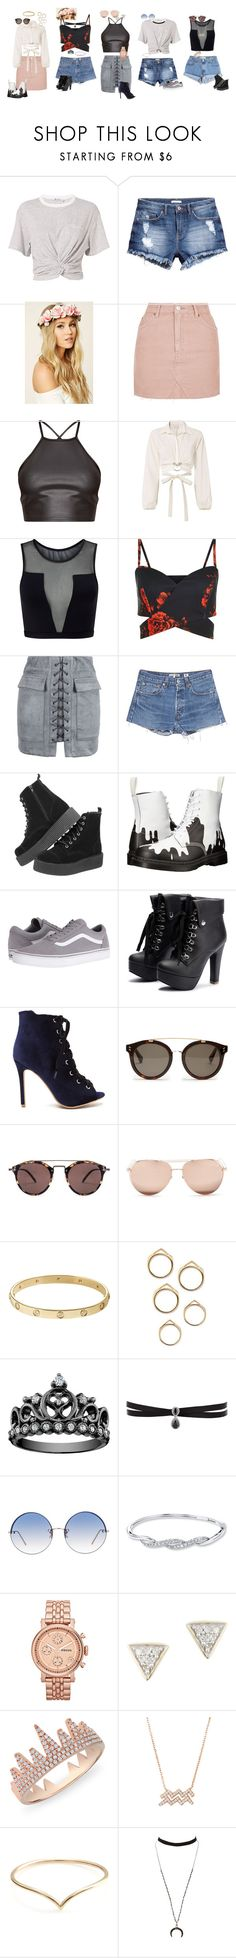 """""""Concert Ware"""" by cheriecufer on Polyvore featuring T By Alexander Wang, H&M, Forever 21, Topshop, Cinq à Sept, Varley, WithChic, RE/DONE, Levi's and Dr. Martens"""